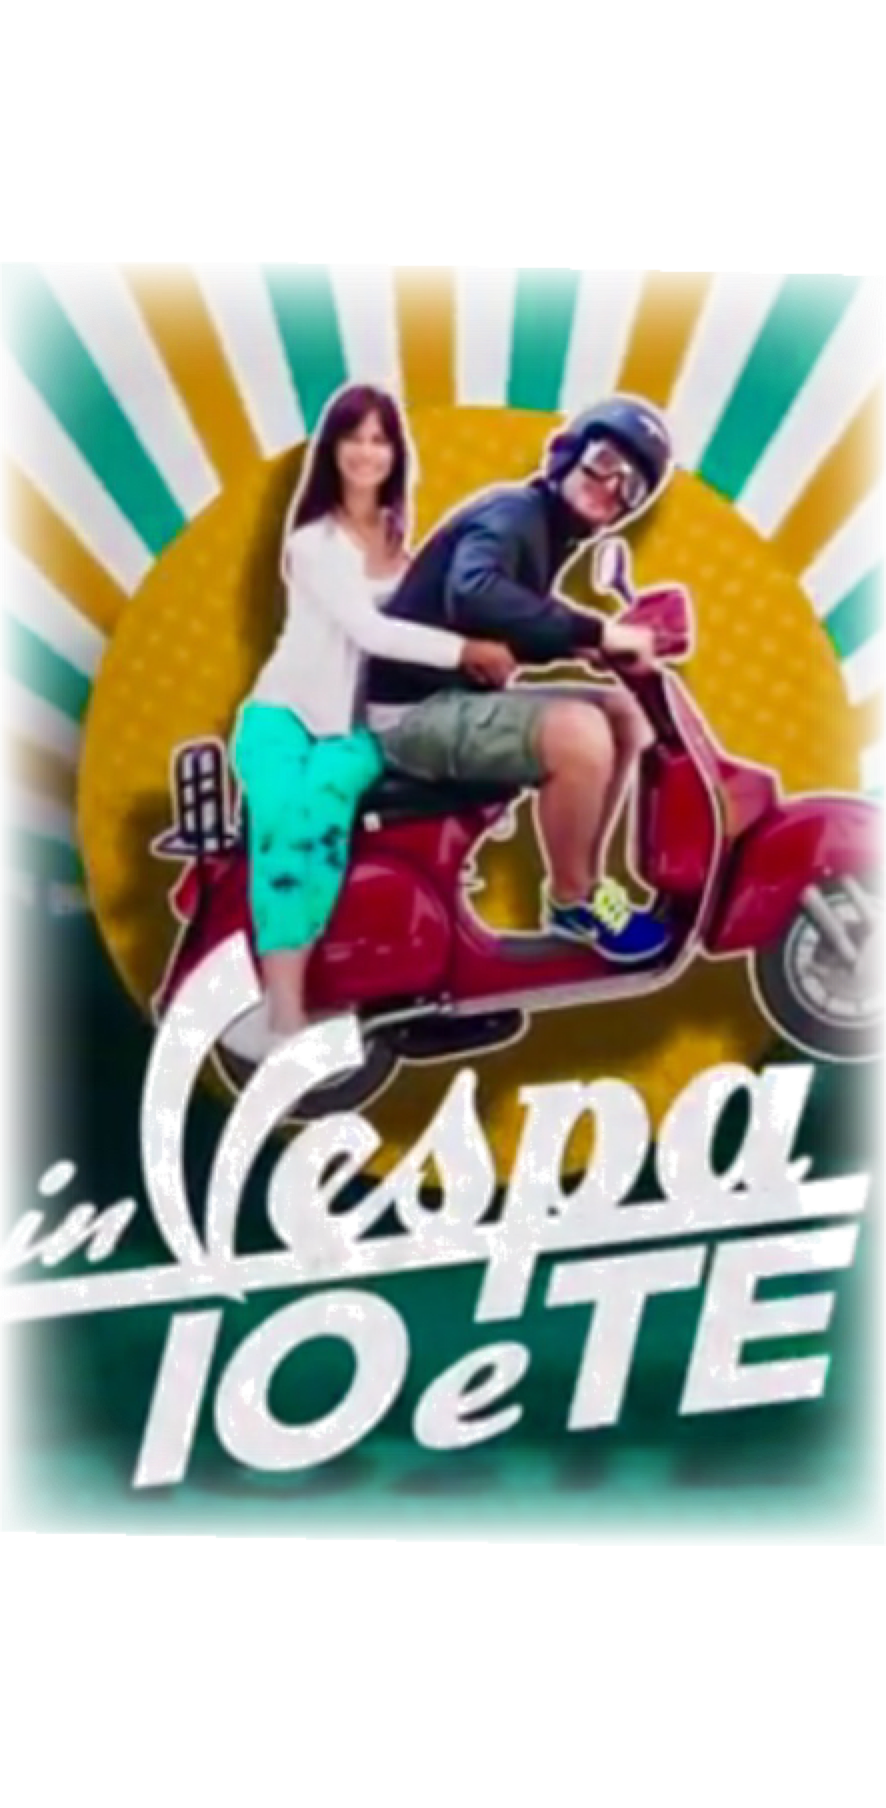 cover In Vespa io e te